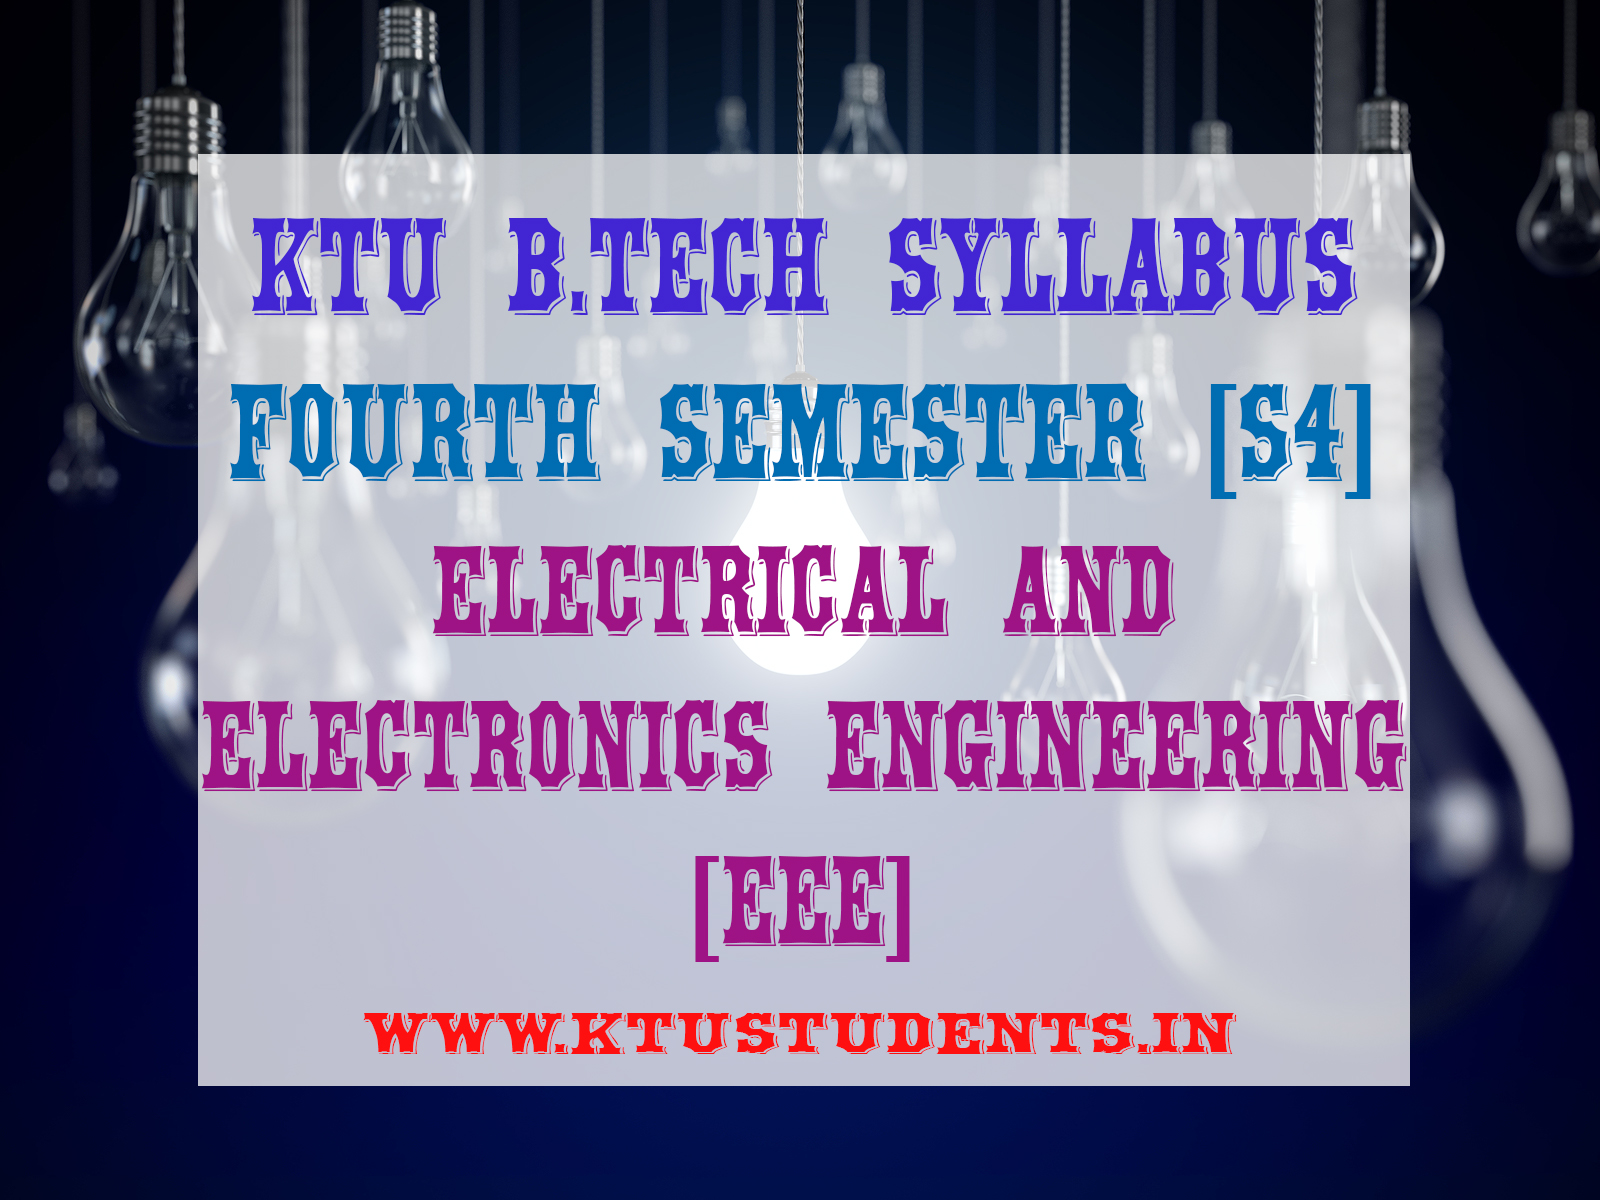 S4 Syllabus Electrical And Electronics Engineering Eee Ktu Students Analog Electronic Circuits Textbook Pdf